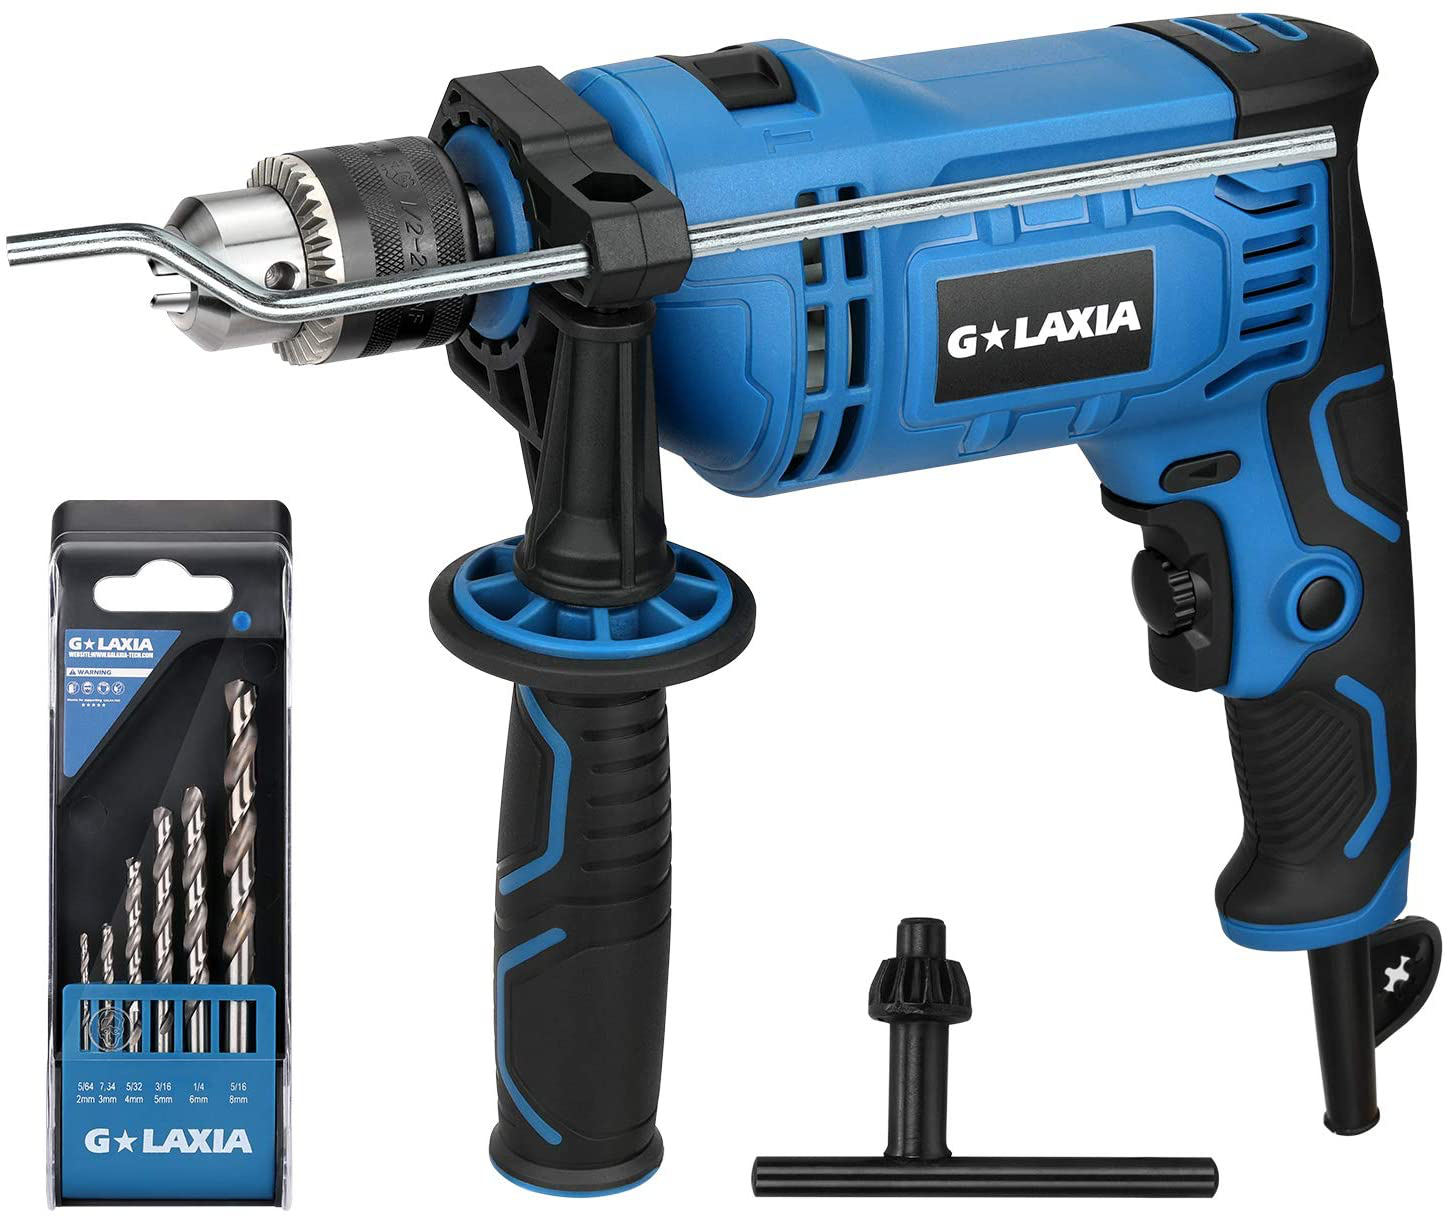 7.5Amp 1/2-inch Keyed 0-2800RPM Variable Speed Corded Drill